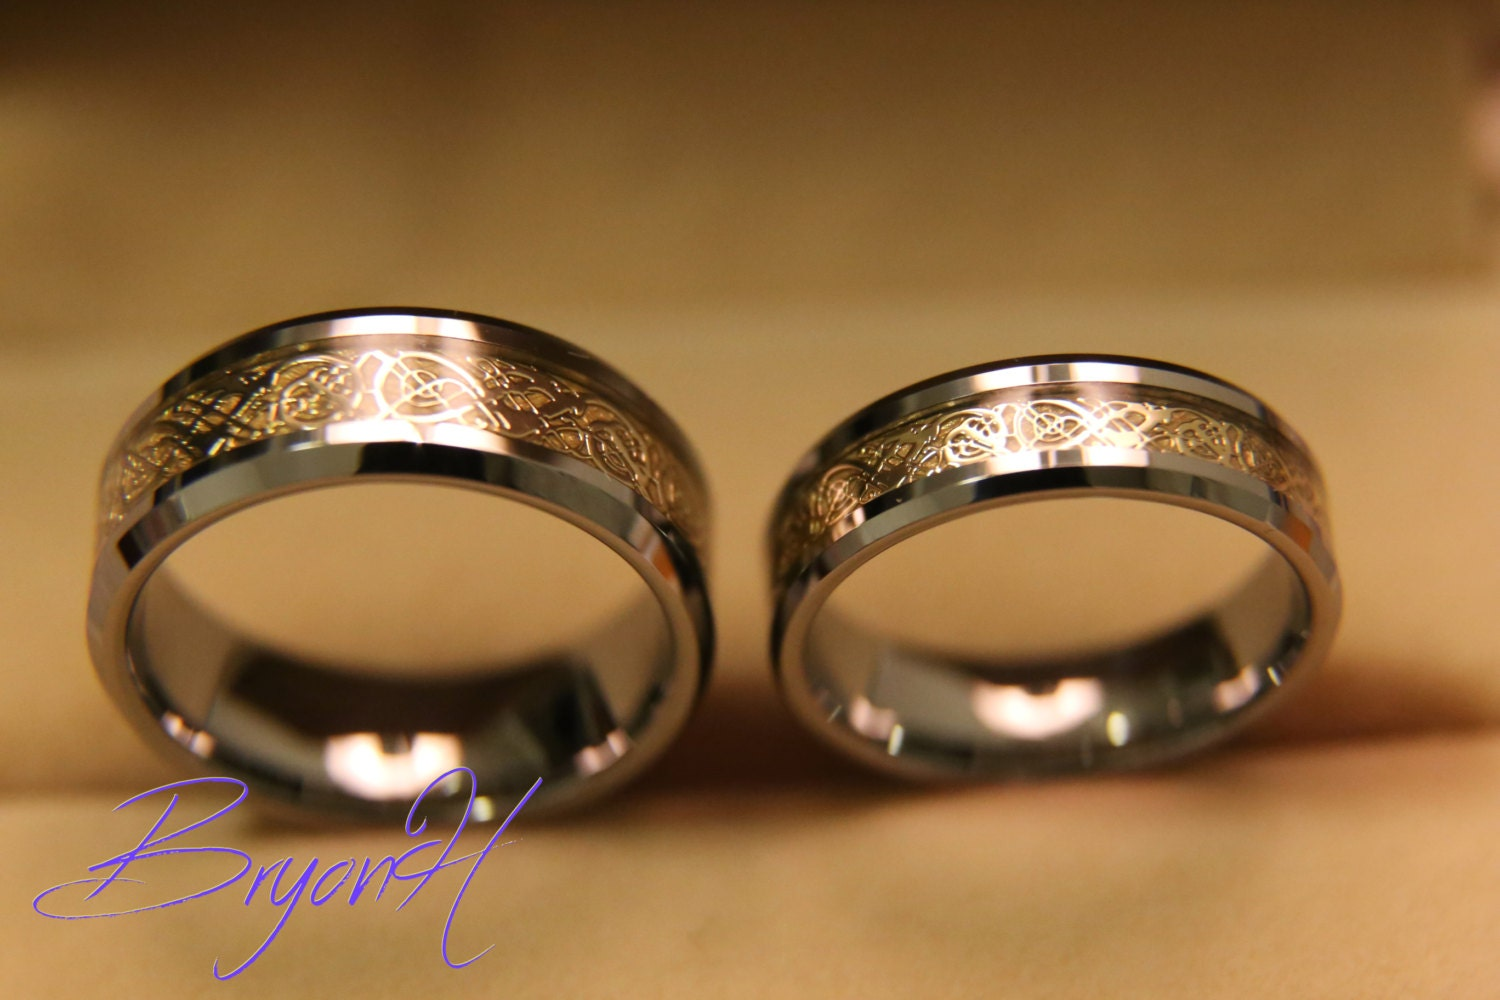 adiamor fully engagement rings blog matching custom wedding unknown customized bands